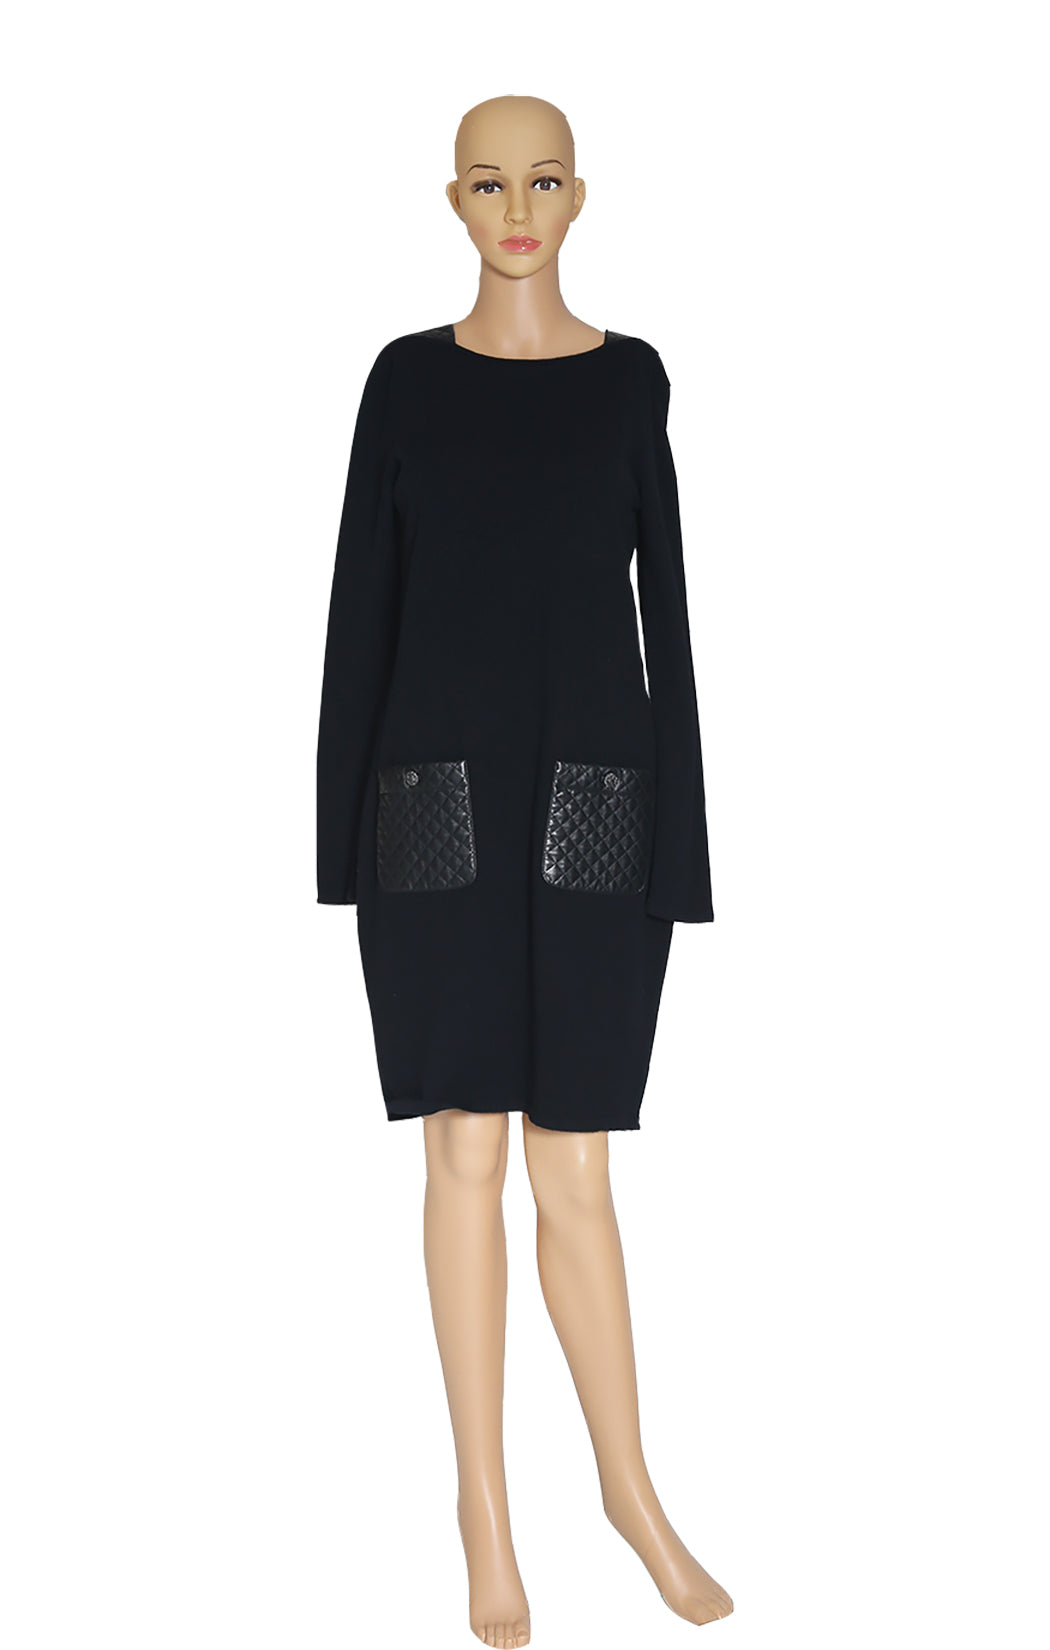 Front view of CHANEL Patch Pocket Dress Size: FR 40 (US 8)